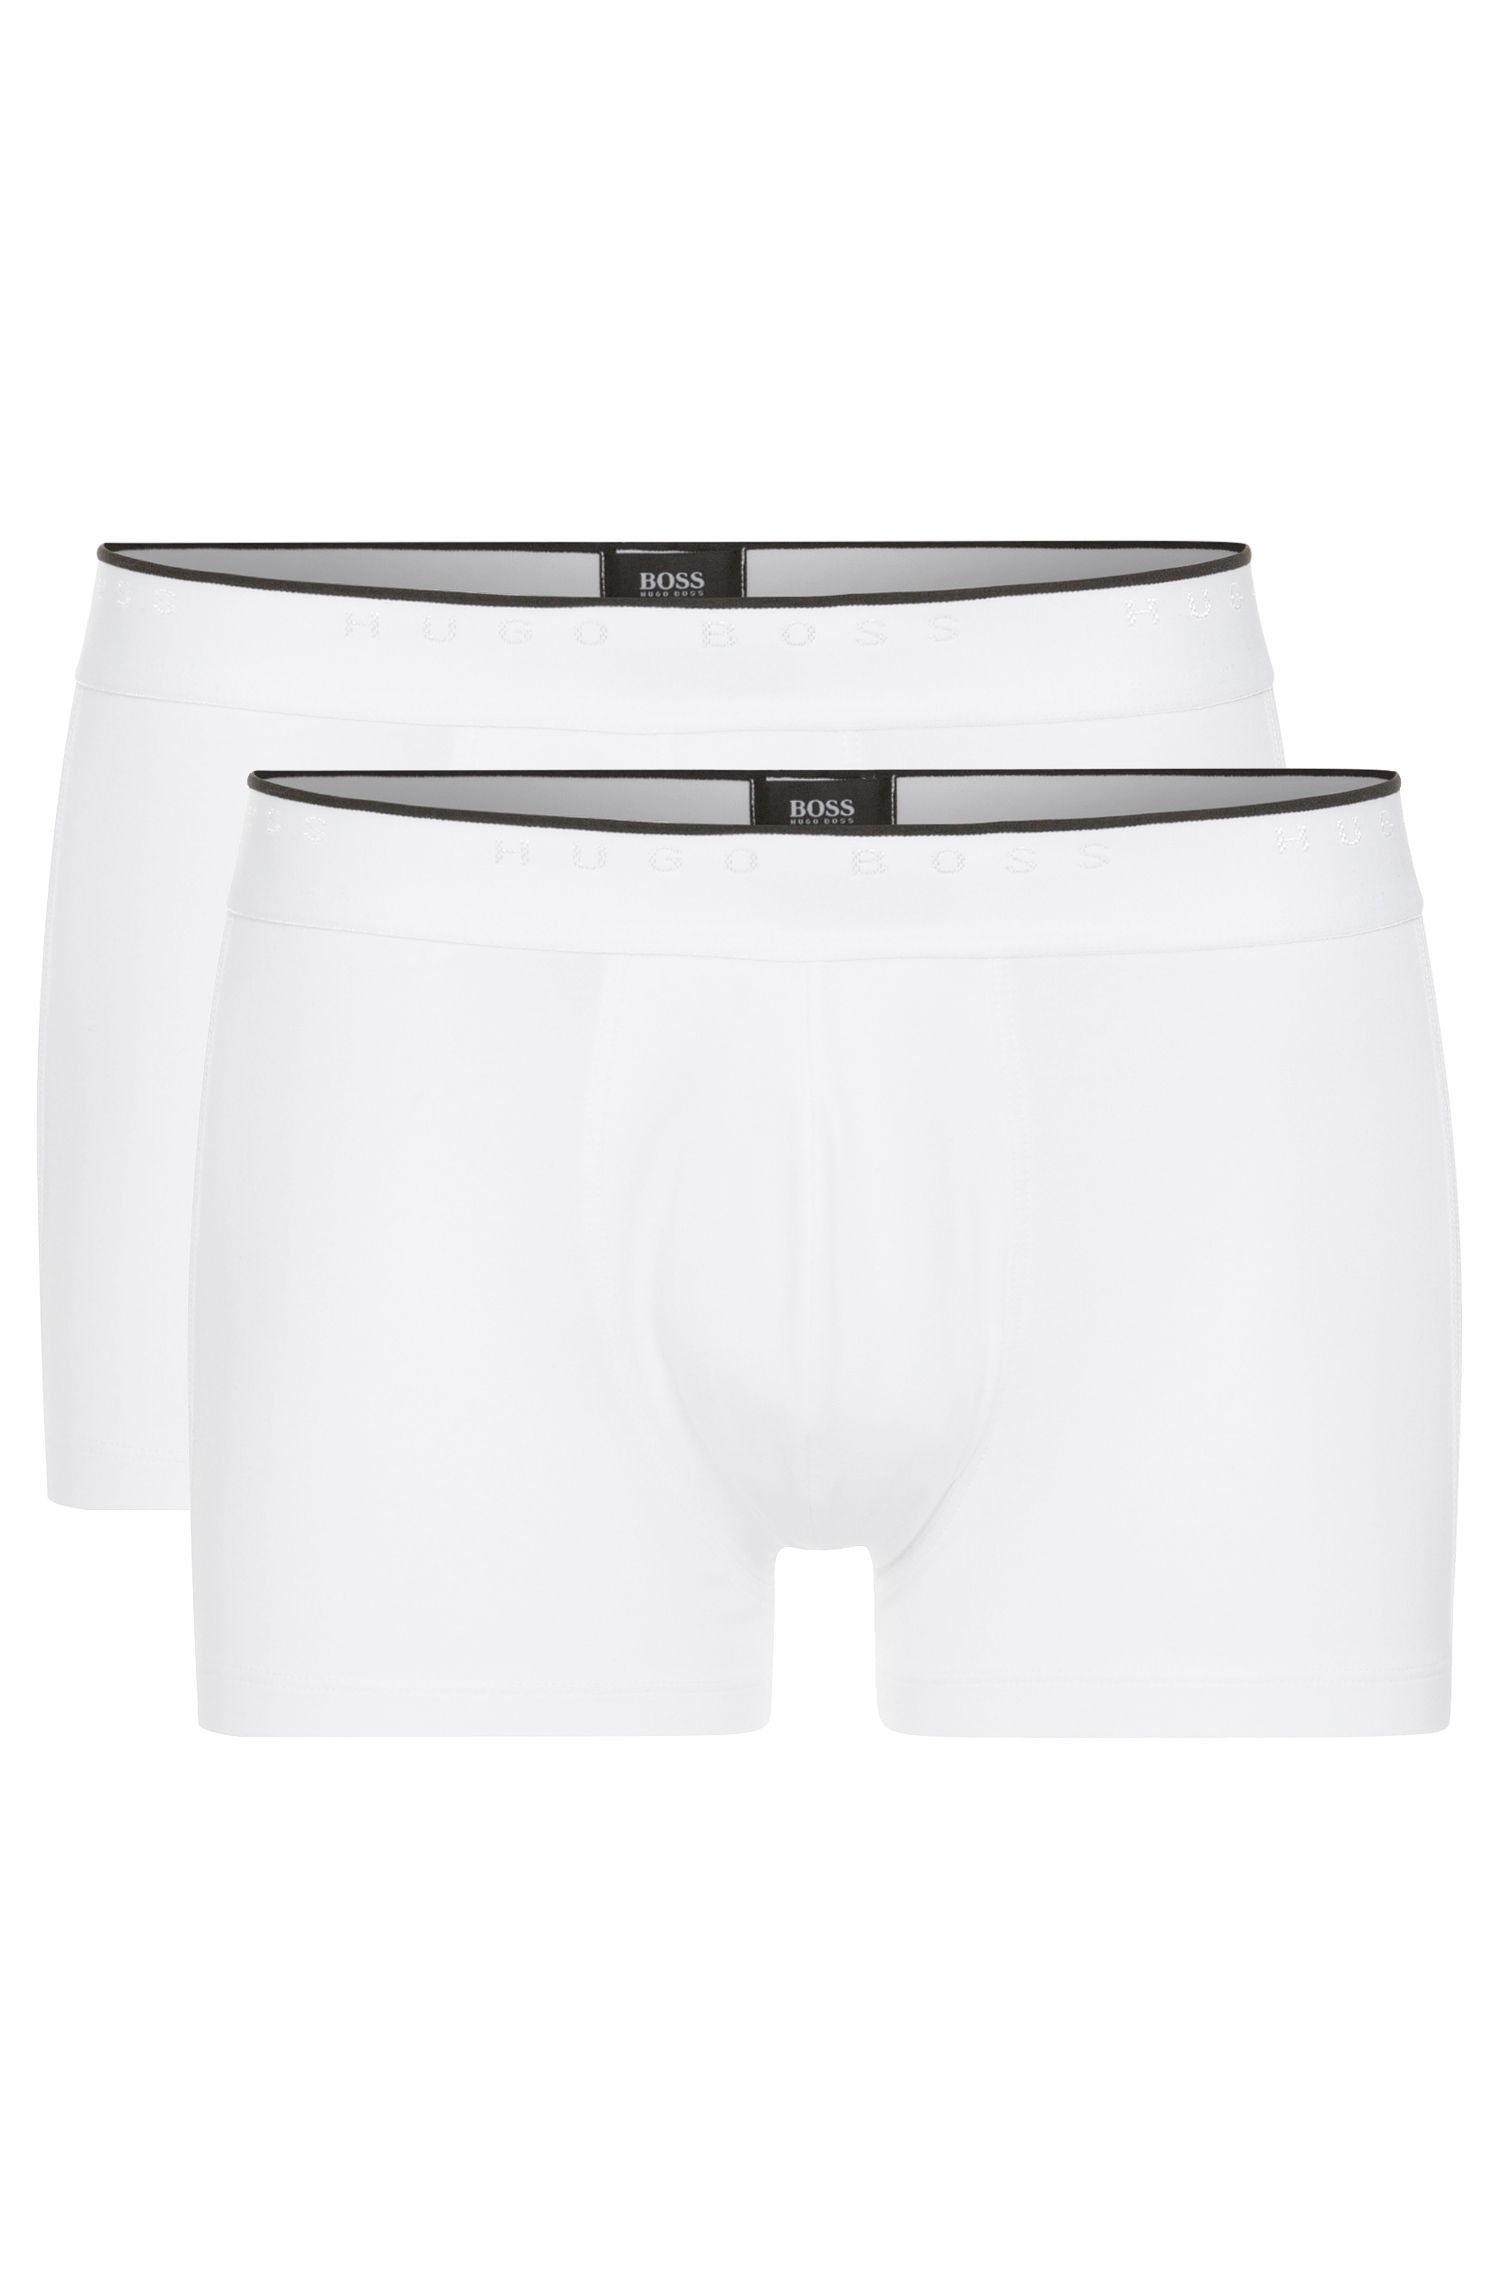 Regular-rise boxer shorts in stretch cotton